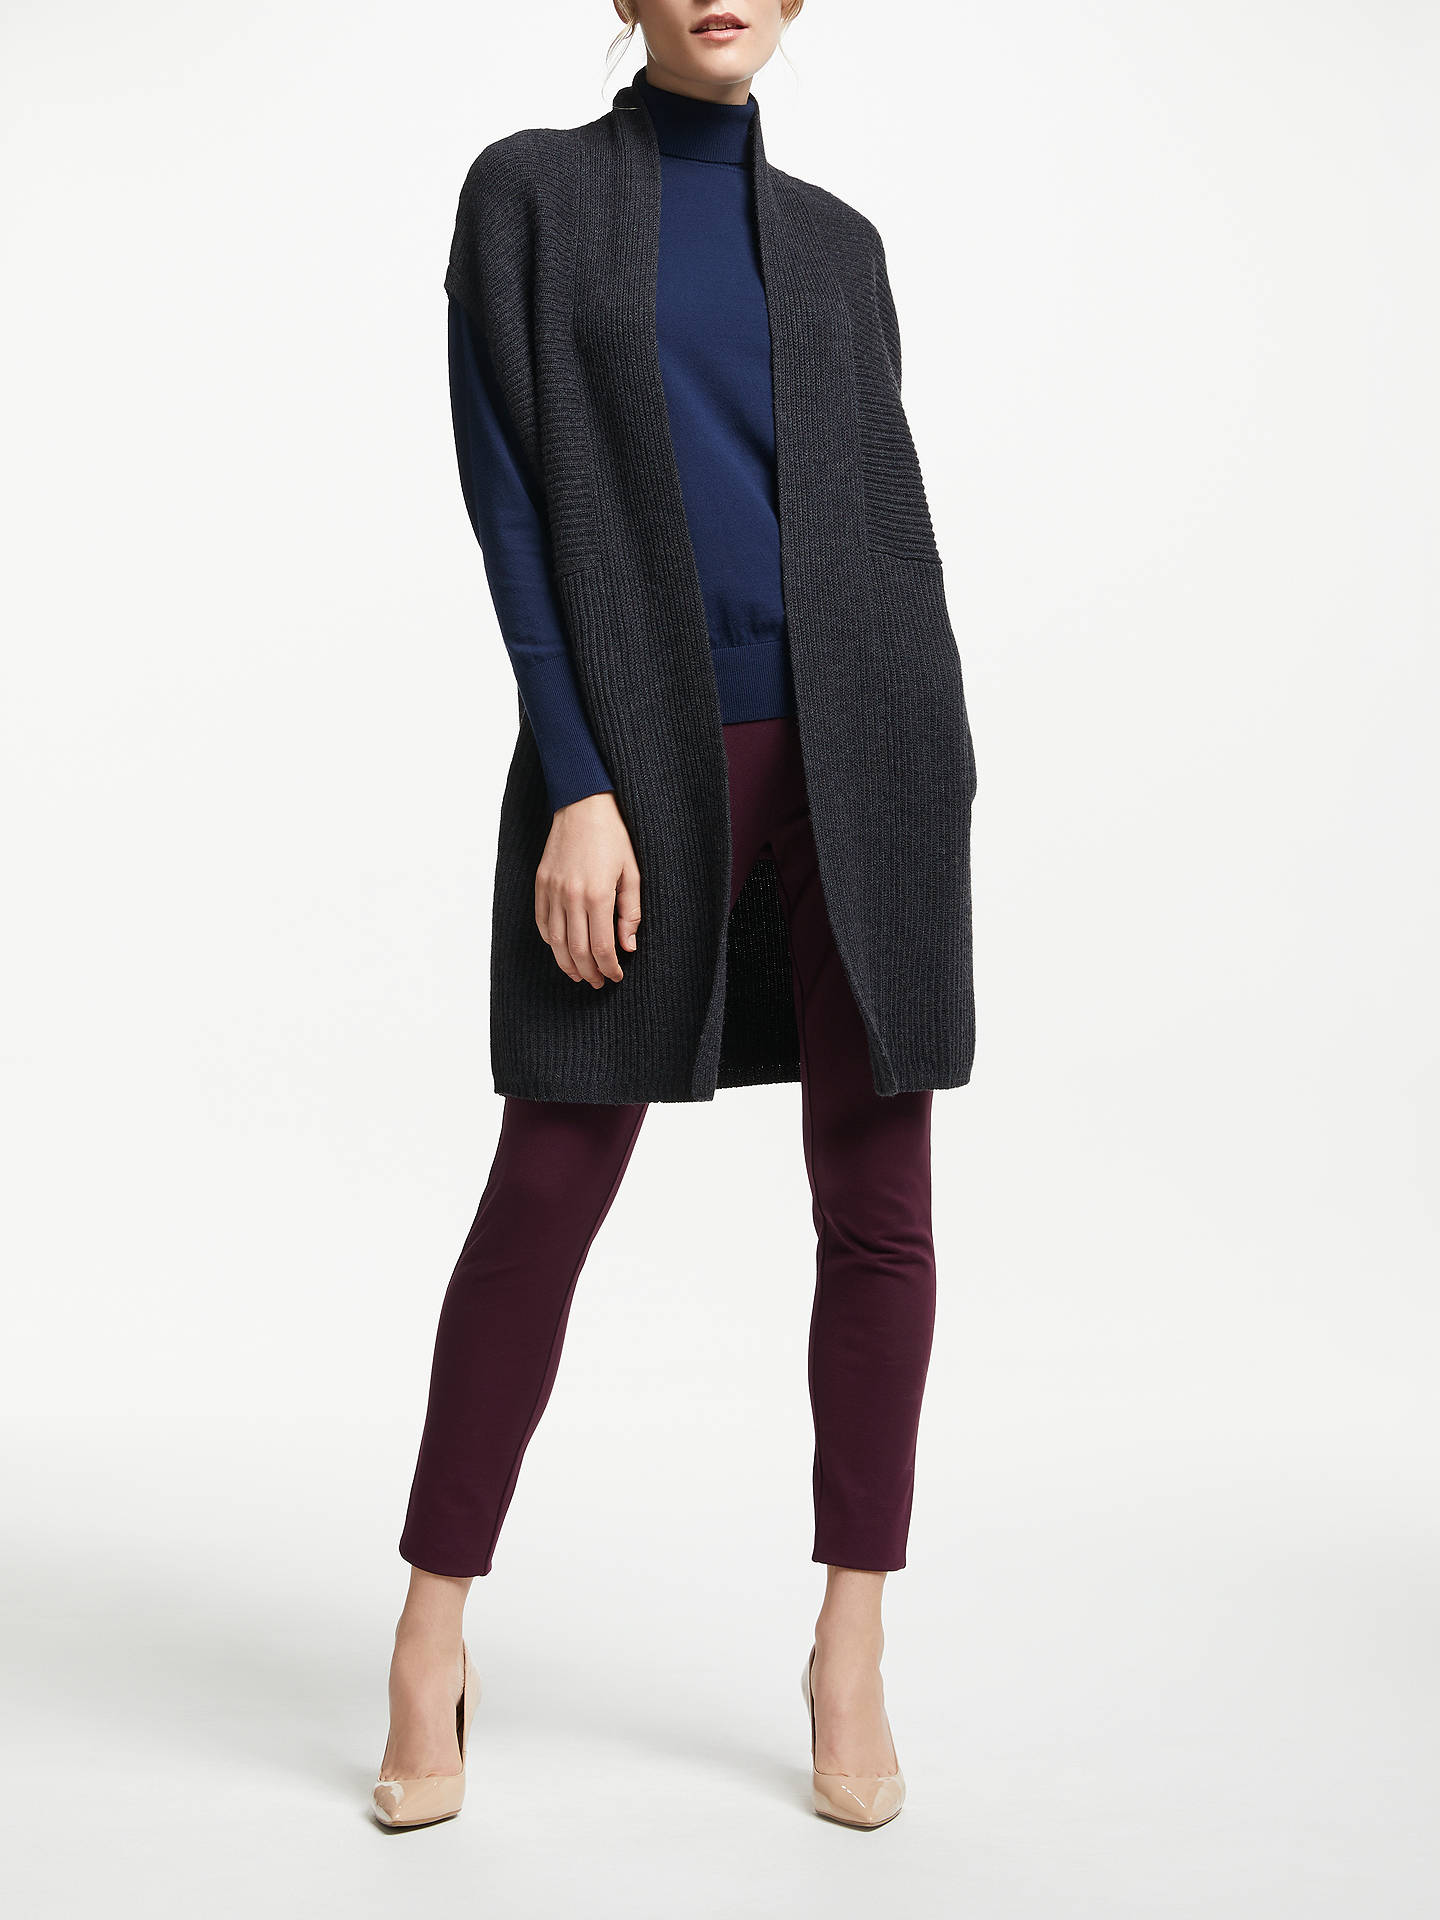 BuyWinser London Merino Wool Sleeveless Cardigan, Charcoal Marl, XS Online at johnlewis.com